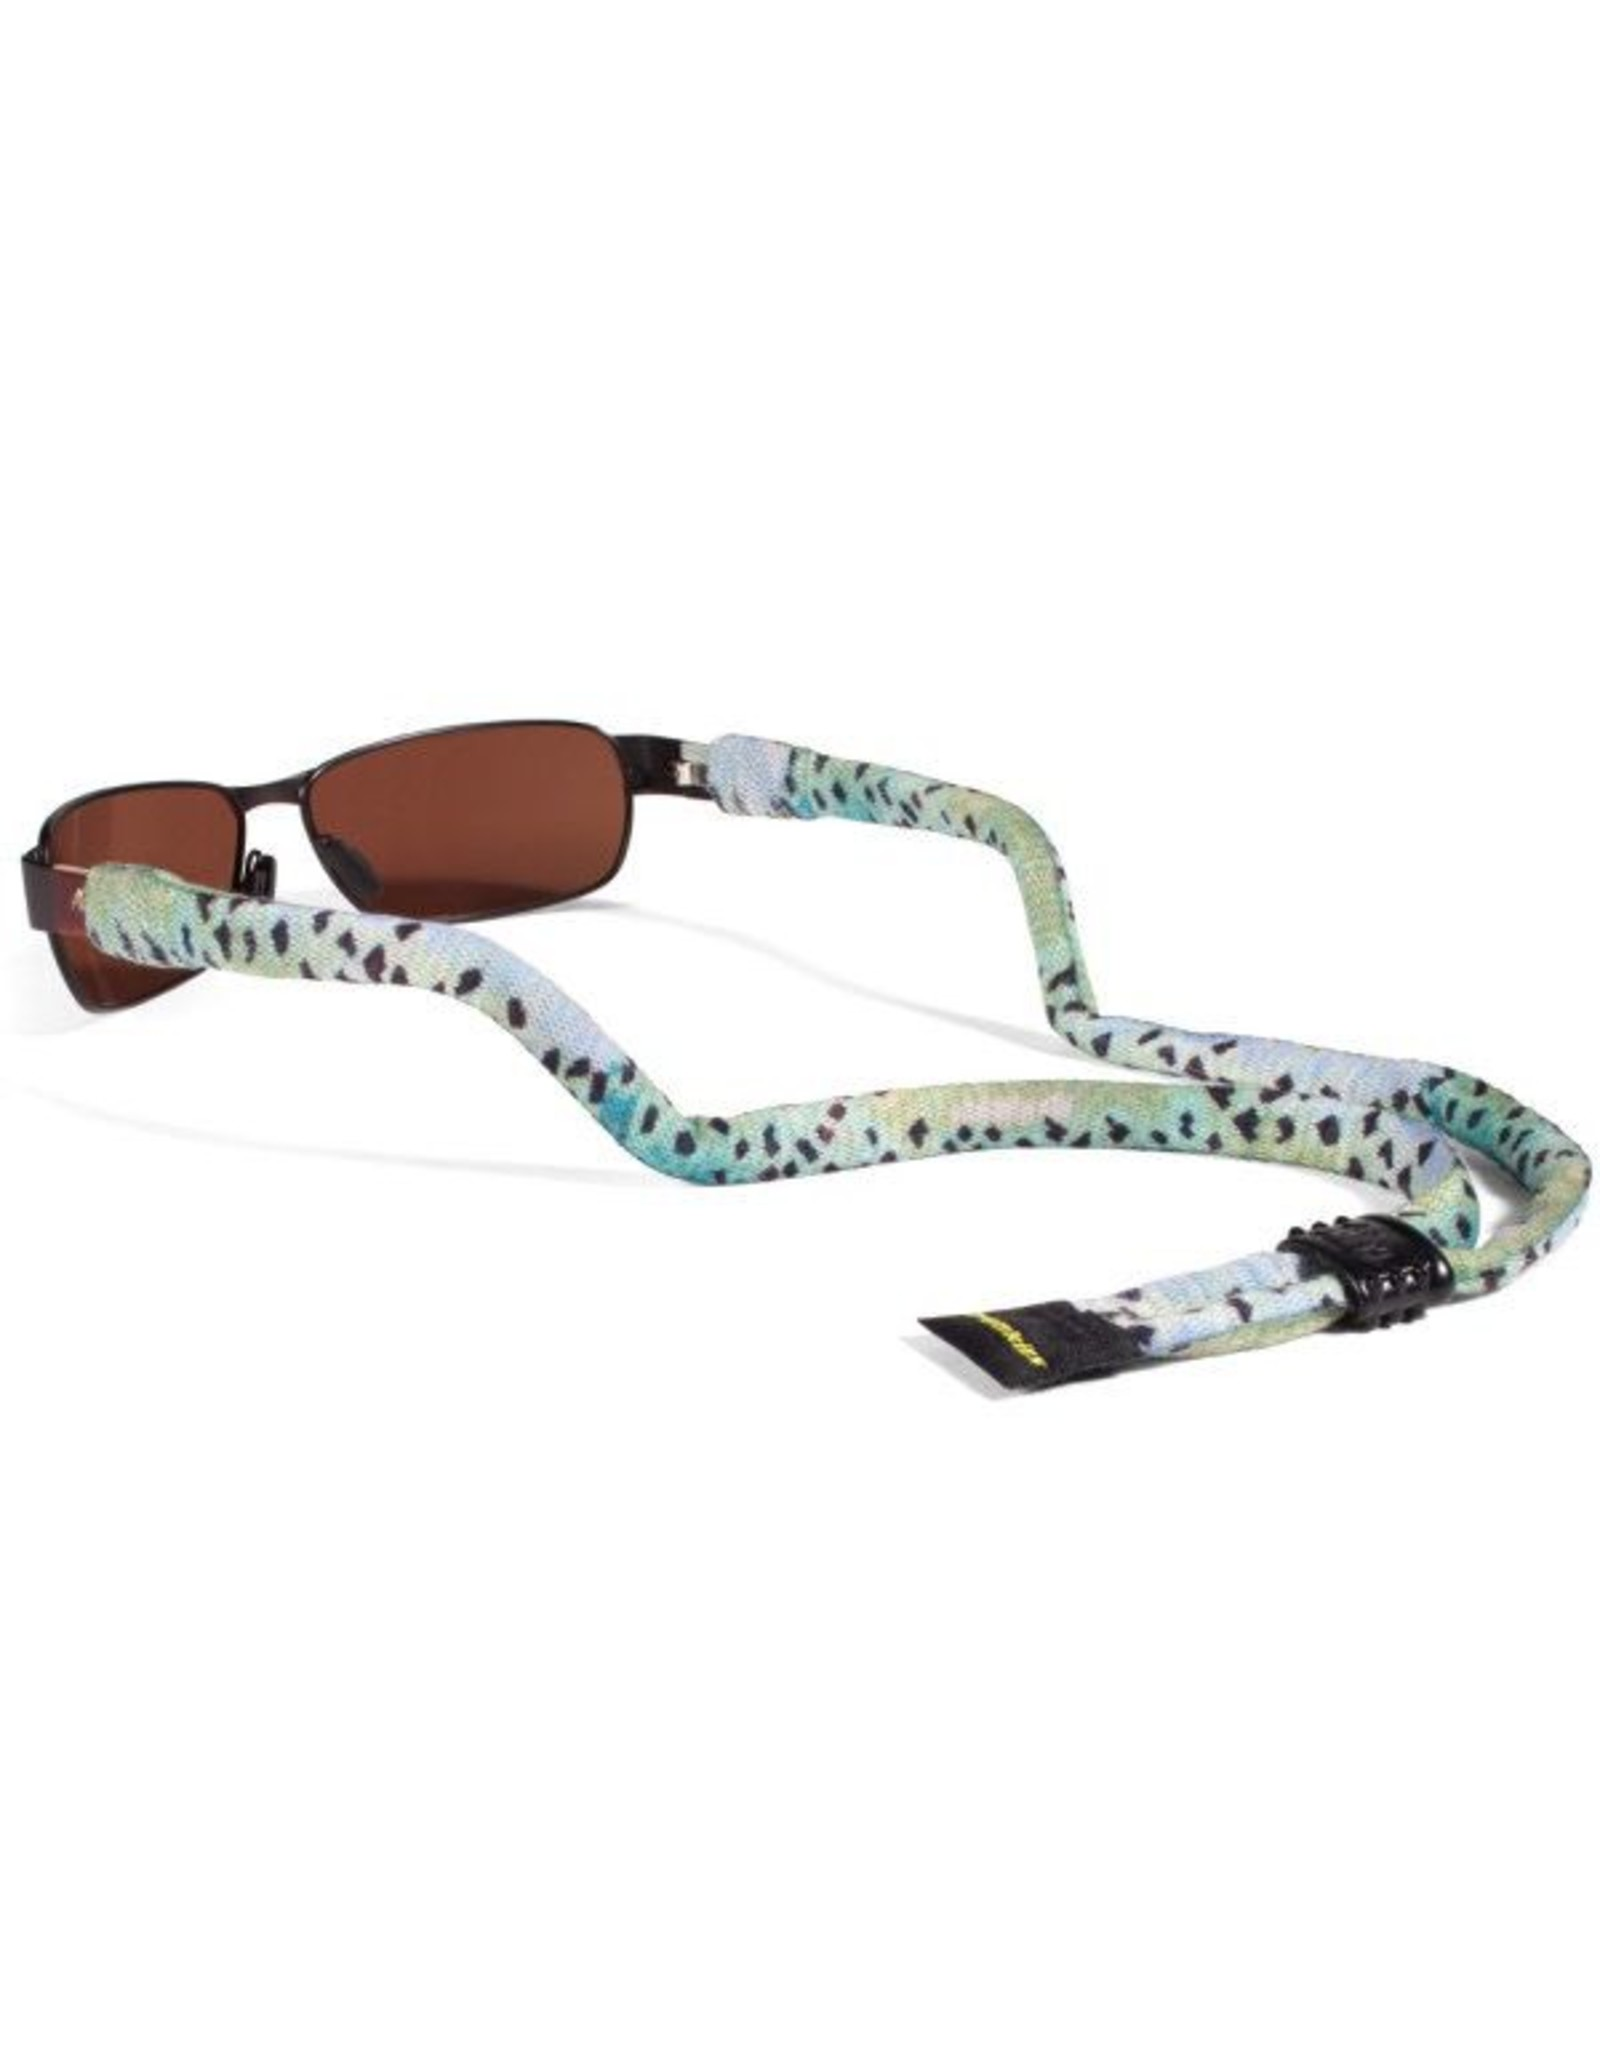 Croakies A D Maddox Suiters Rainbow Fish Skin